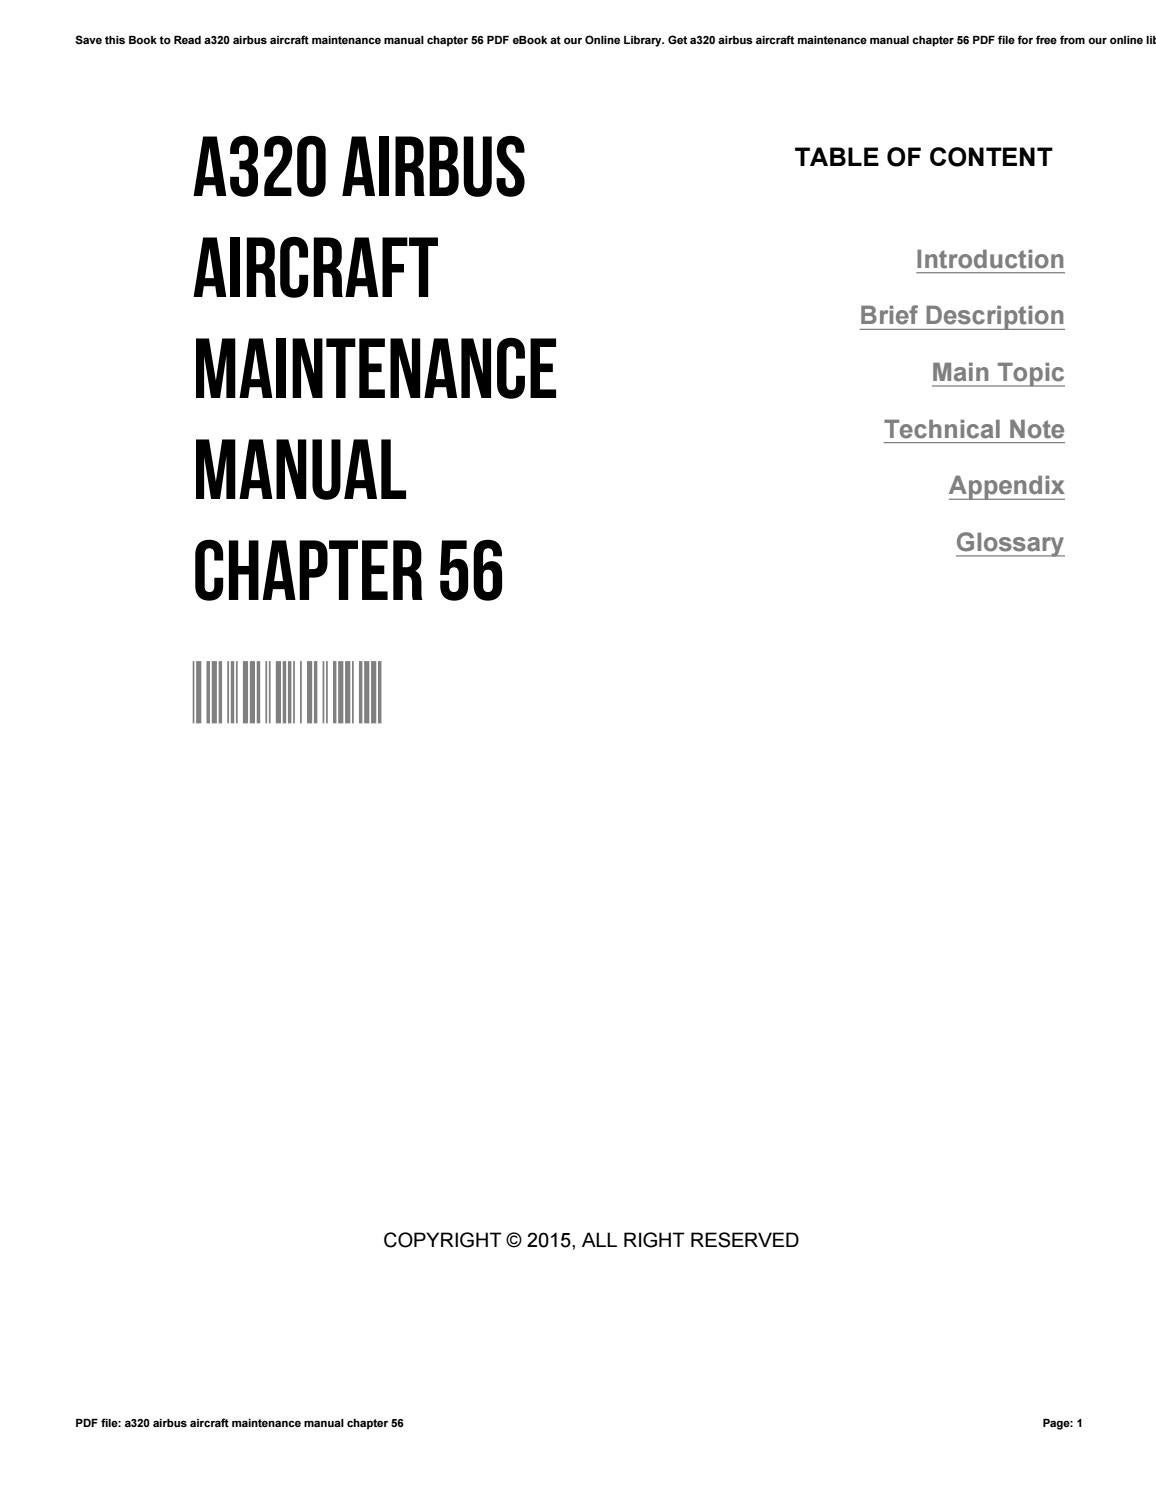 A320 airbus aircraft maintenance manual chapter 56 by